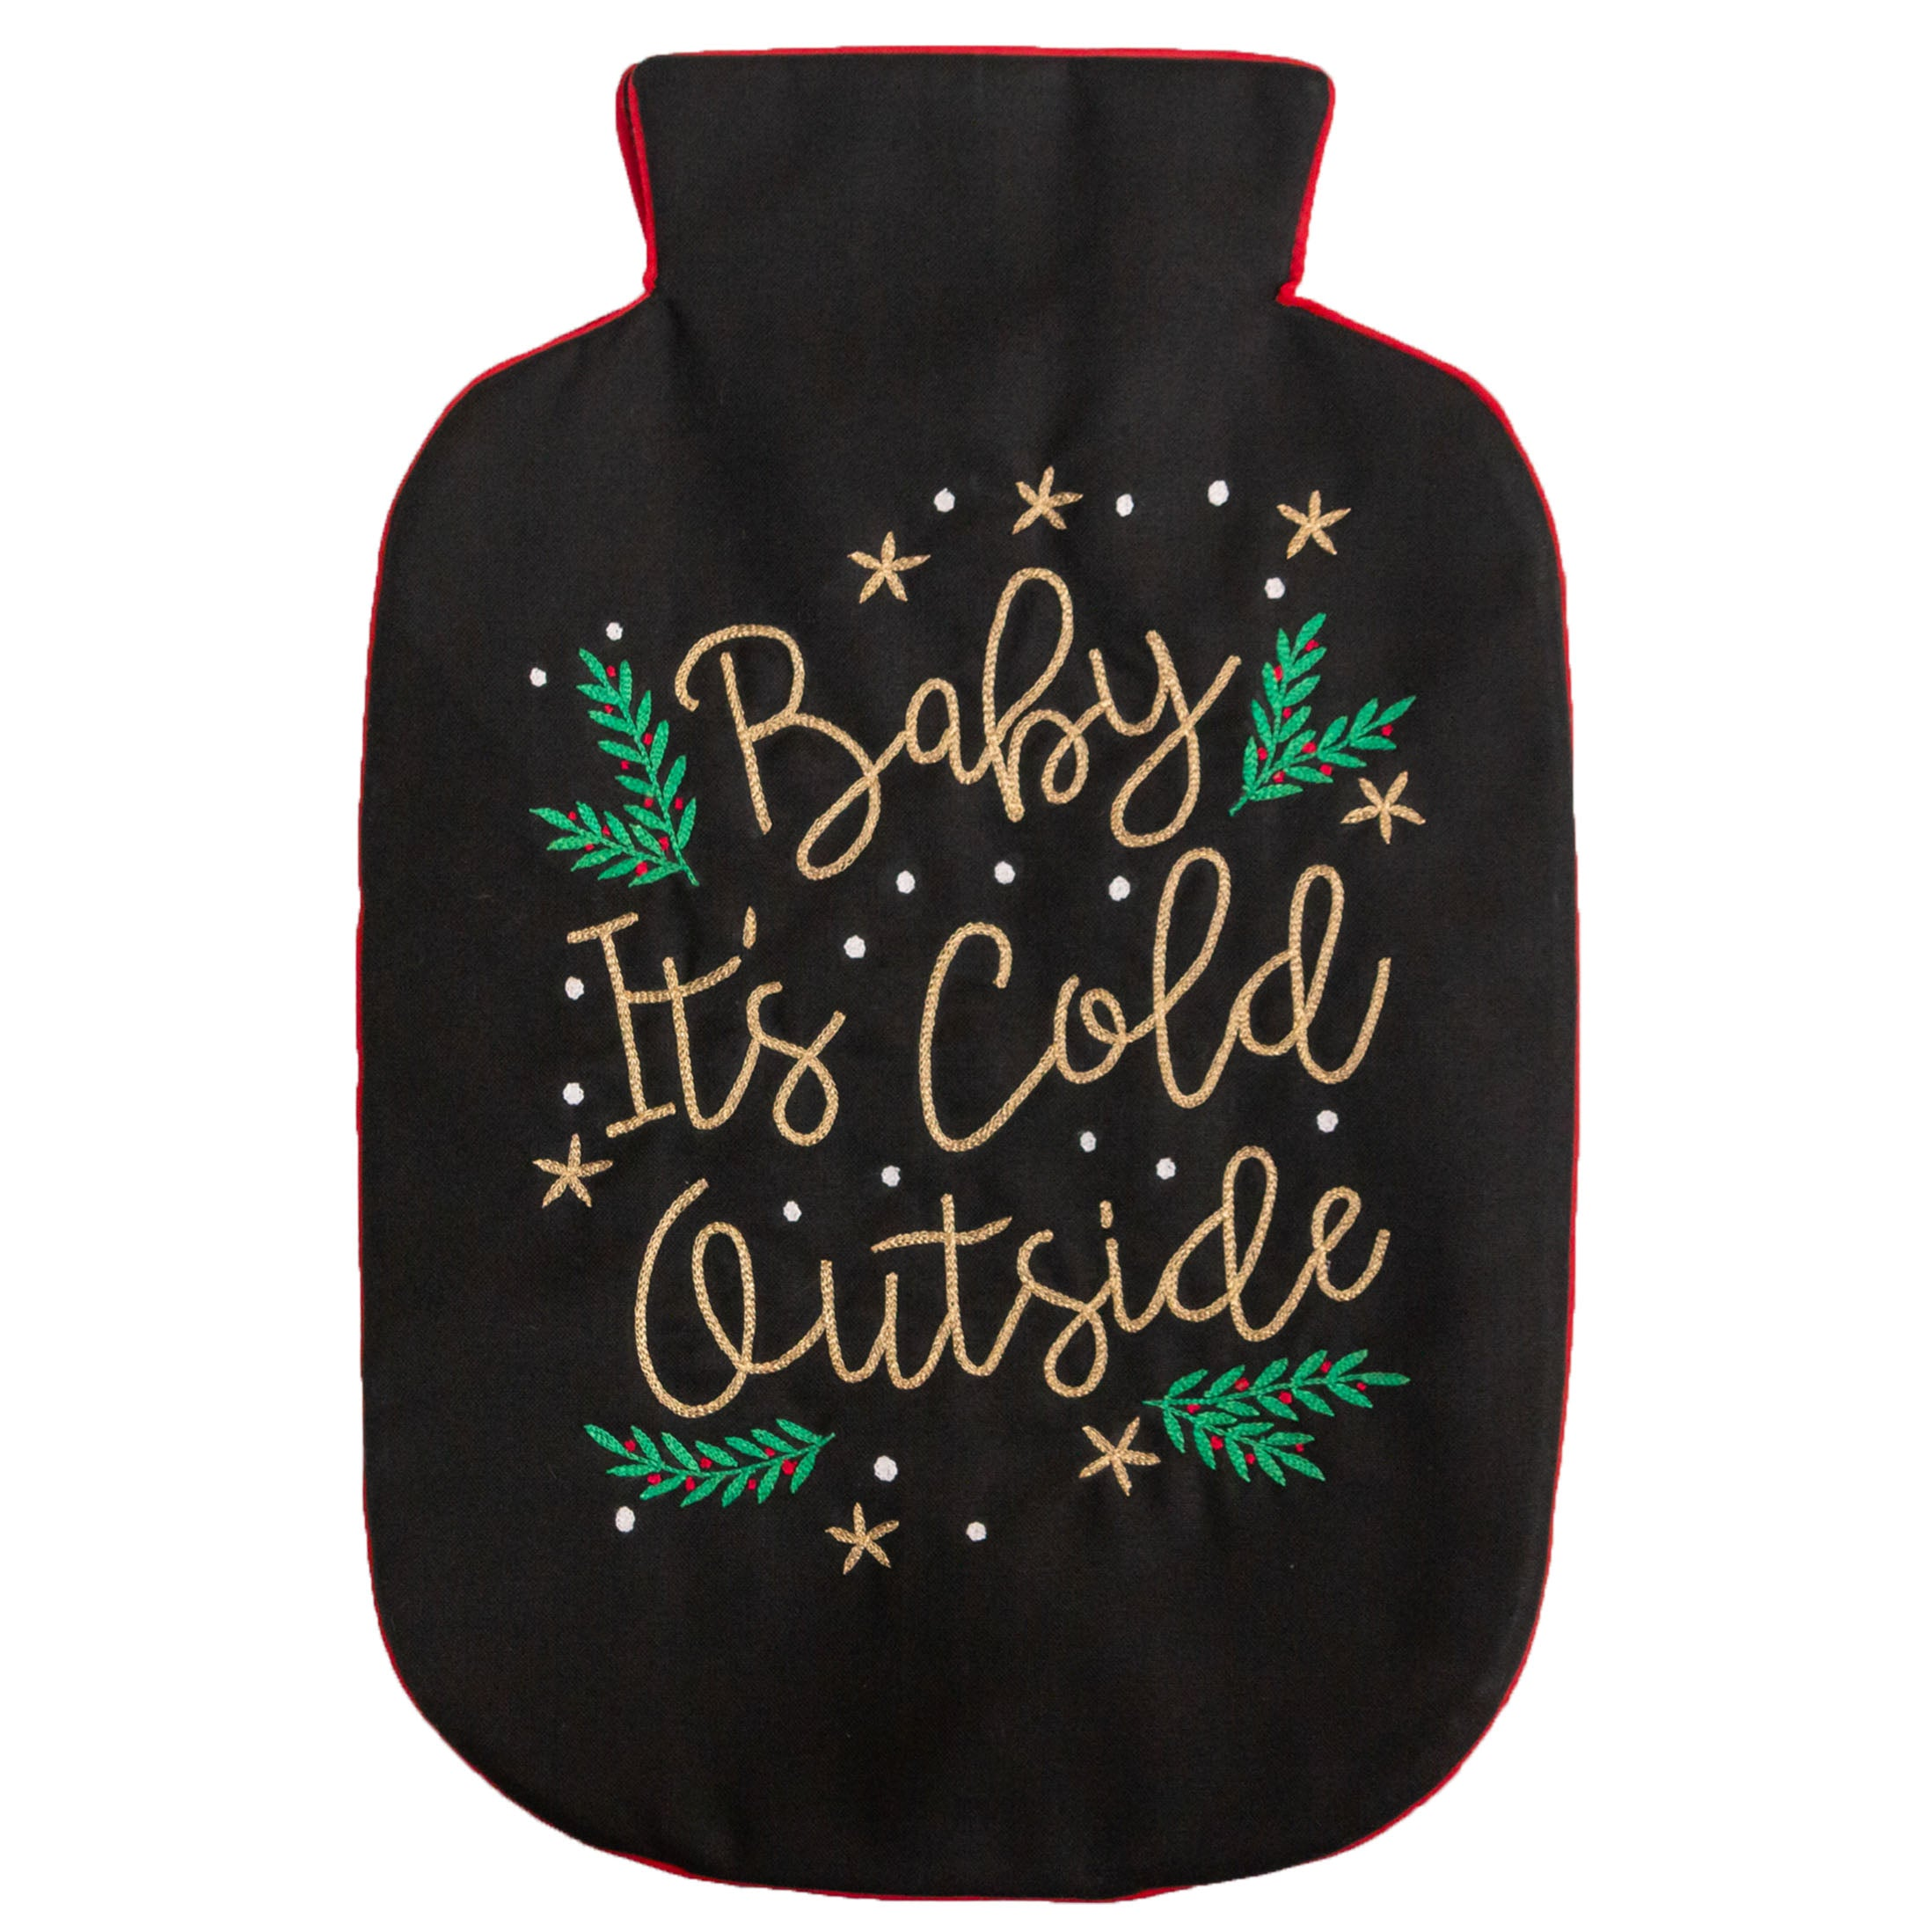 Baby It's Cold Outside Hot Water Bag Cover